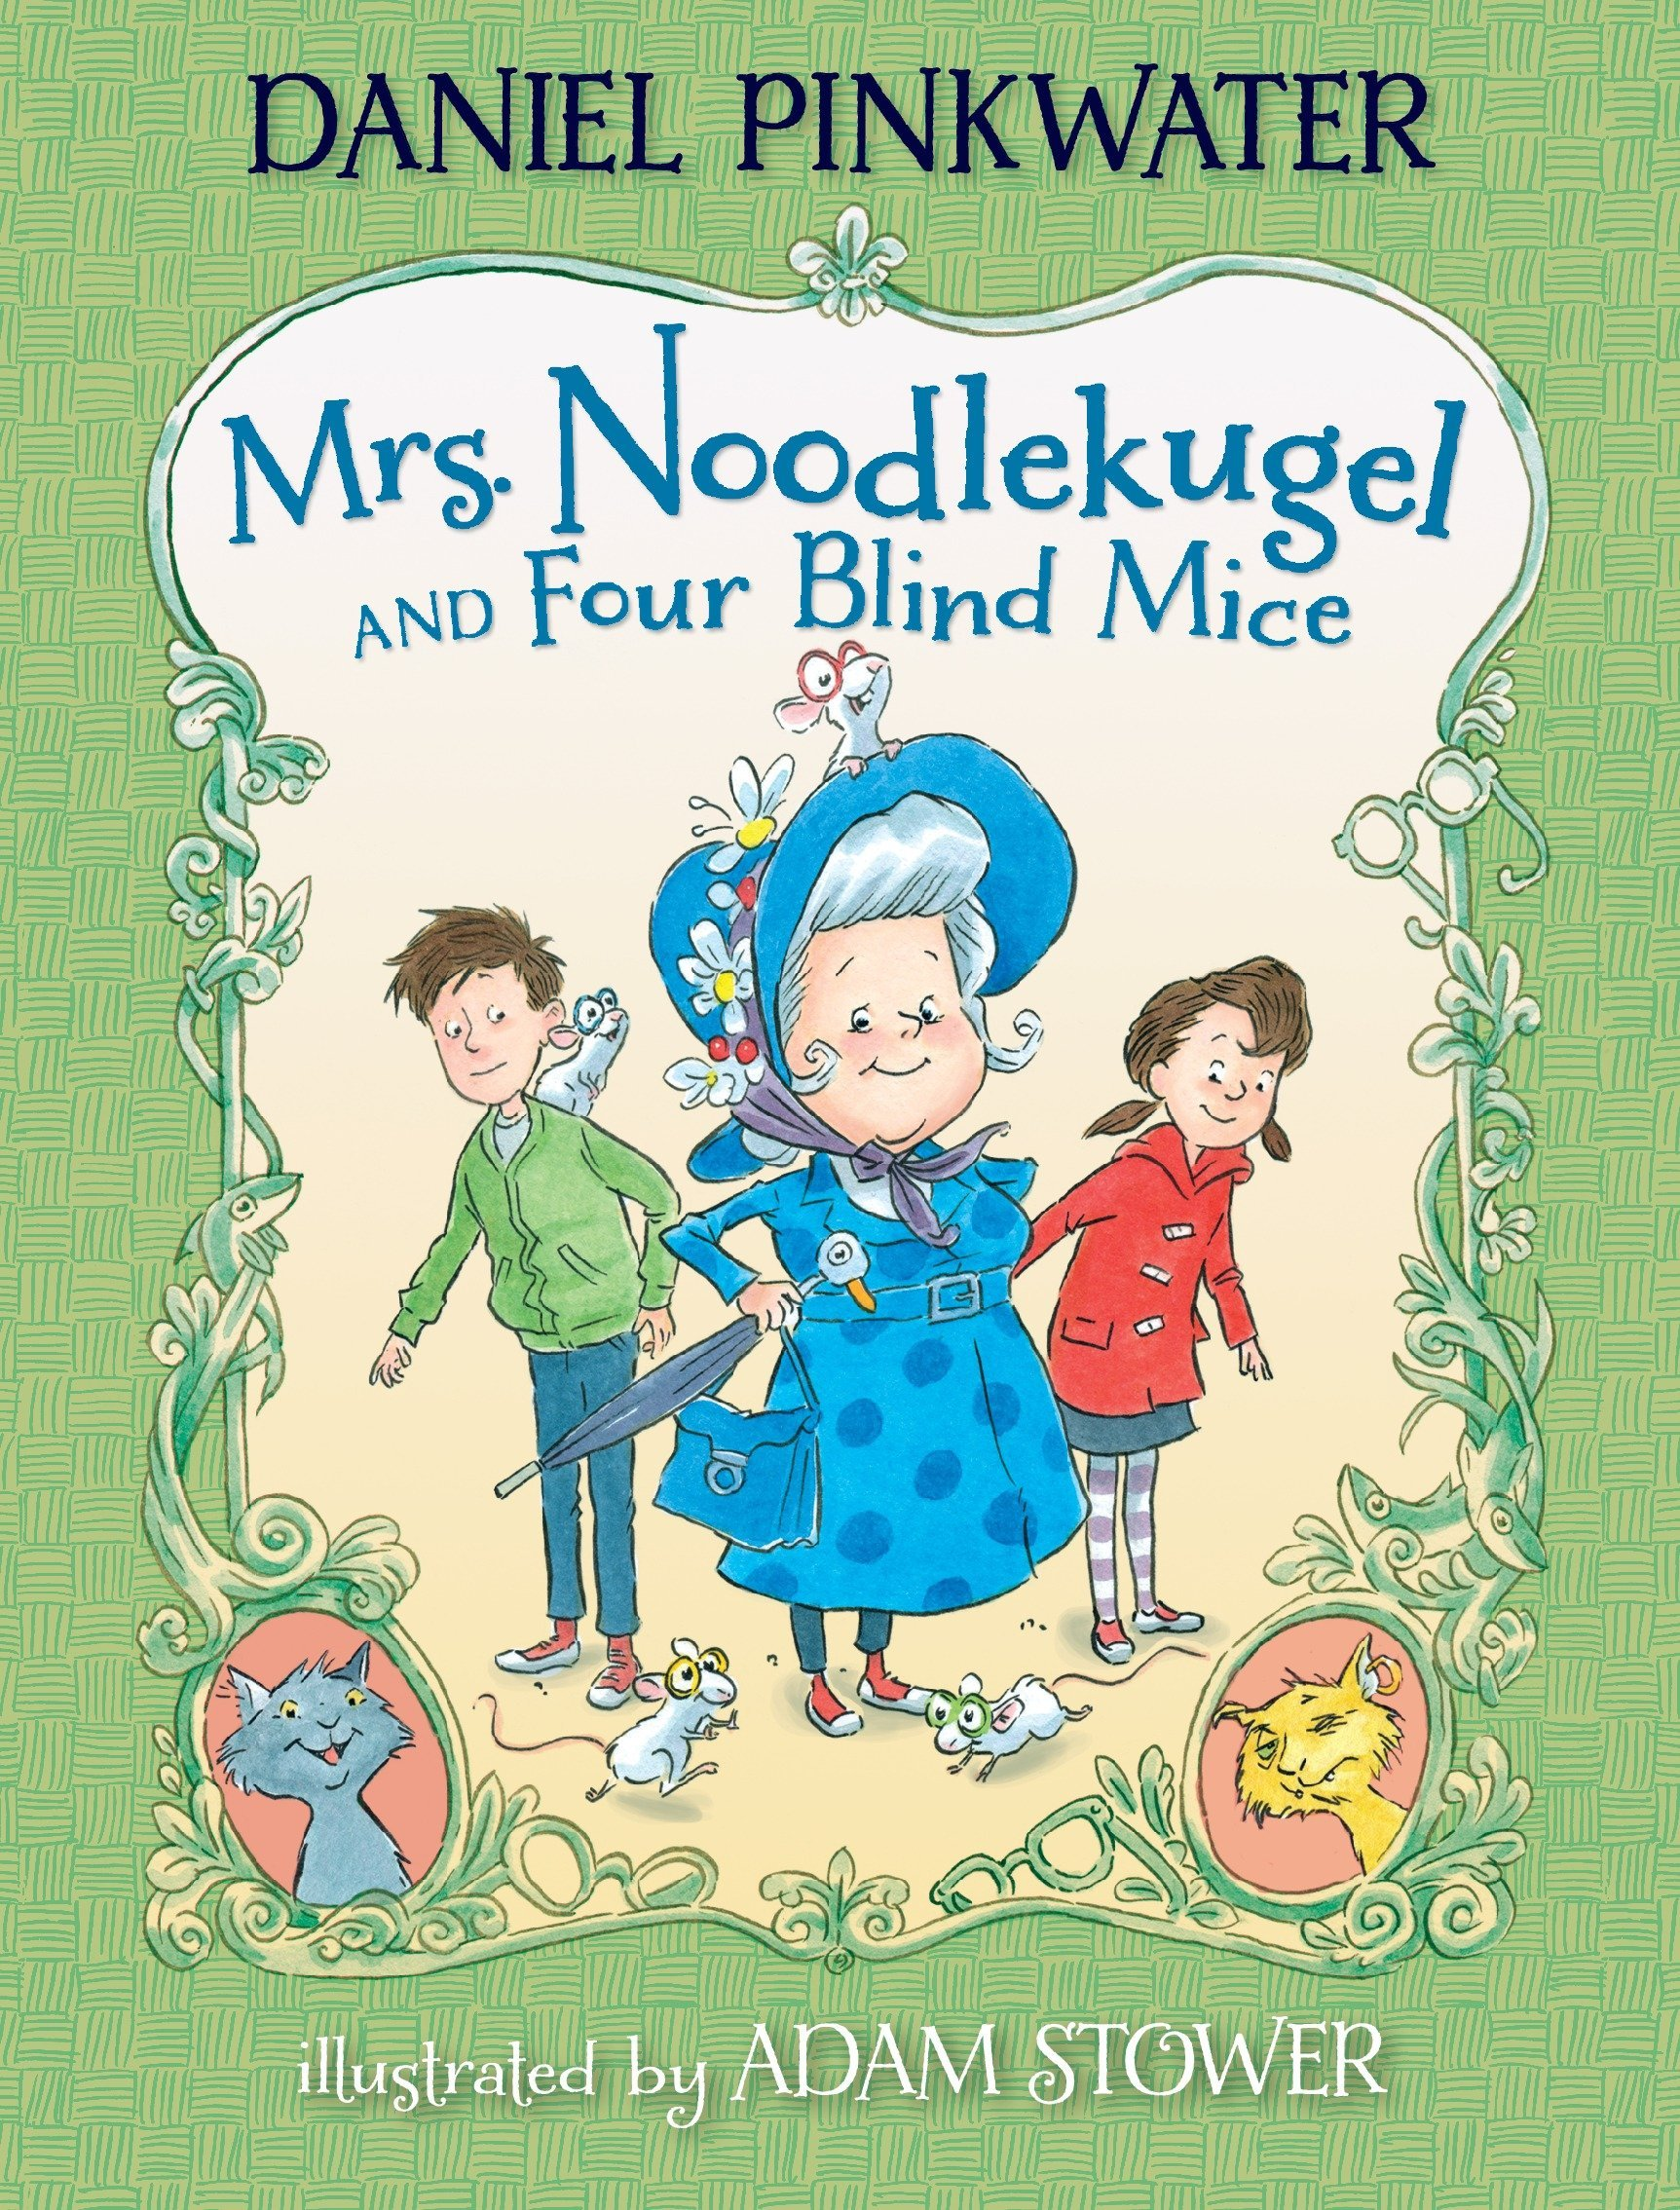 Amazon.com: Mrs. Noodlekugel and Four Blind Mice (9780763650544): Daniel  Pinkwater, Adam Stower: Books